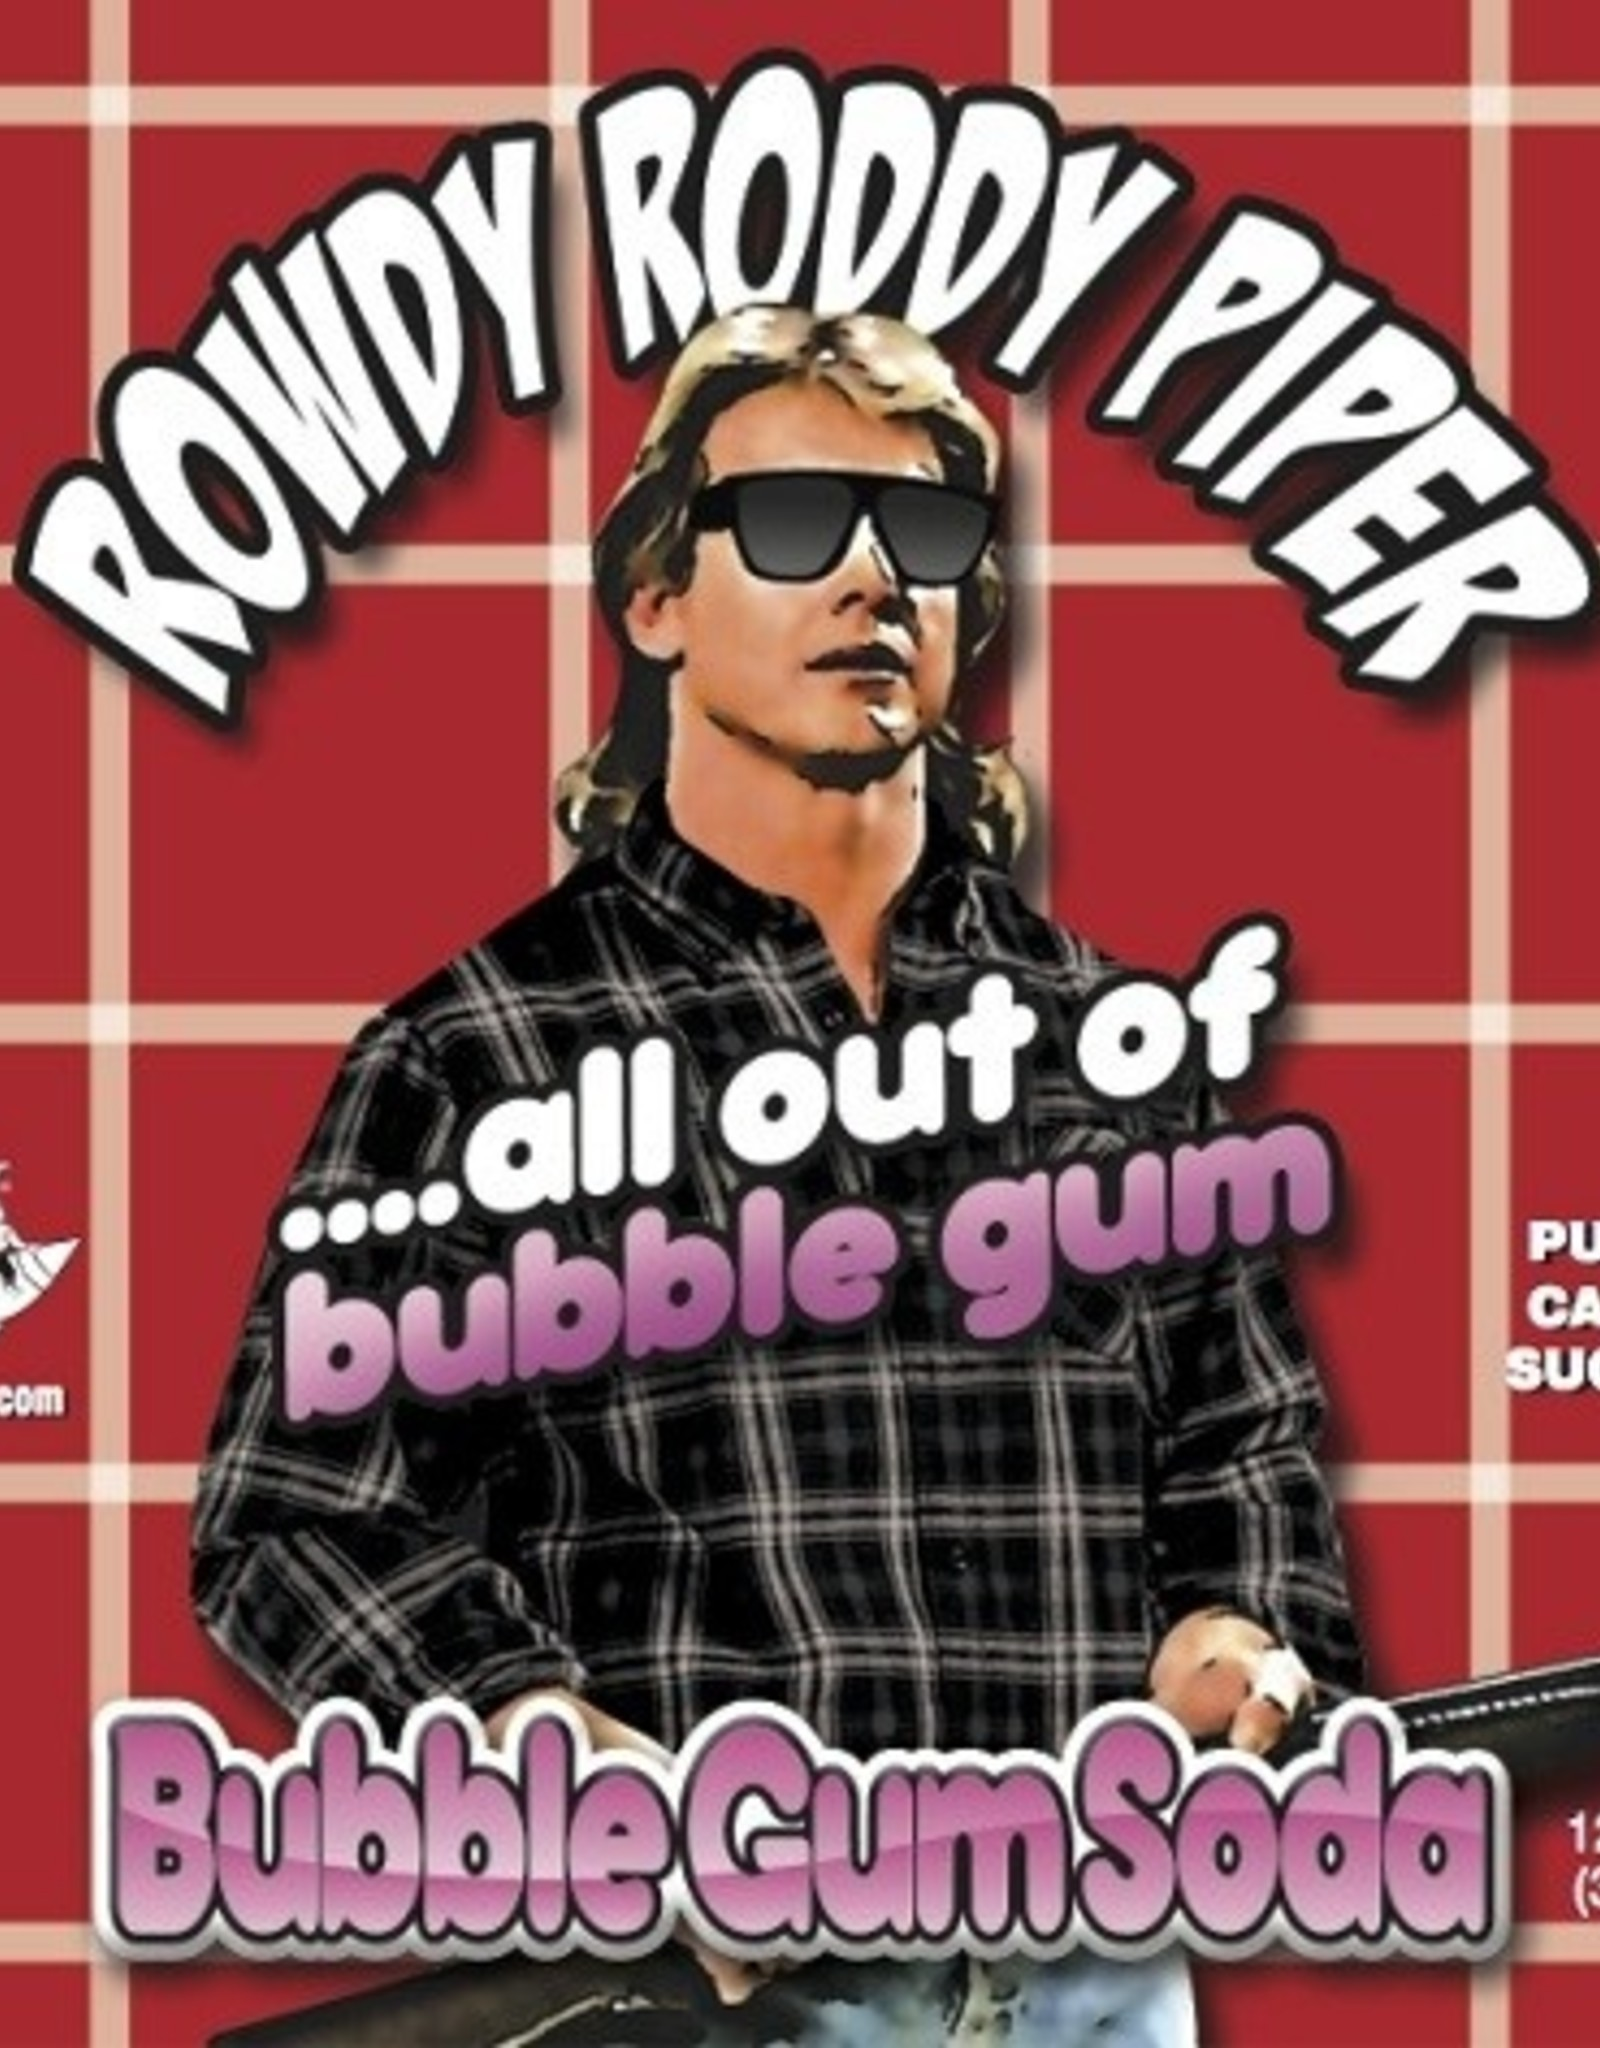 Rocket Fizz Rowdy Roddy Piper Bubble Gum